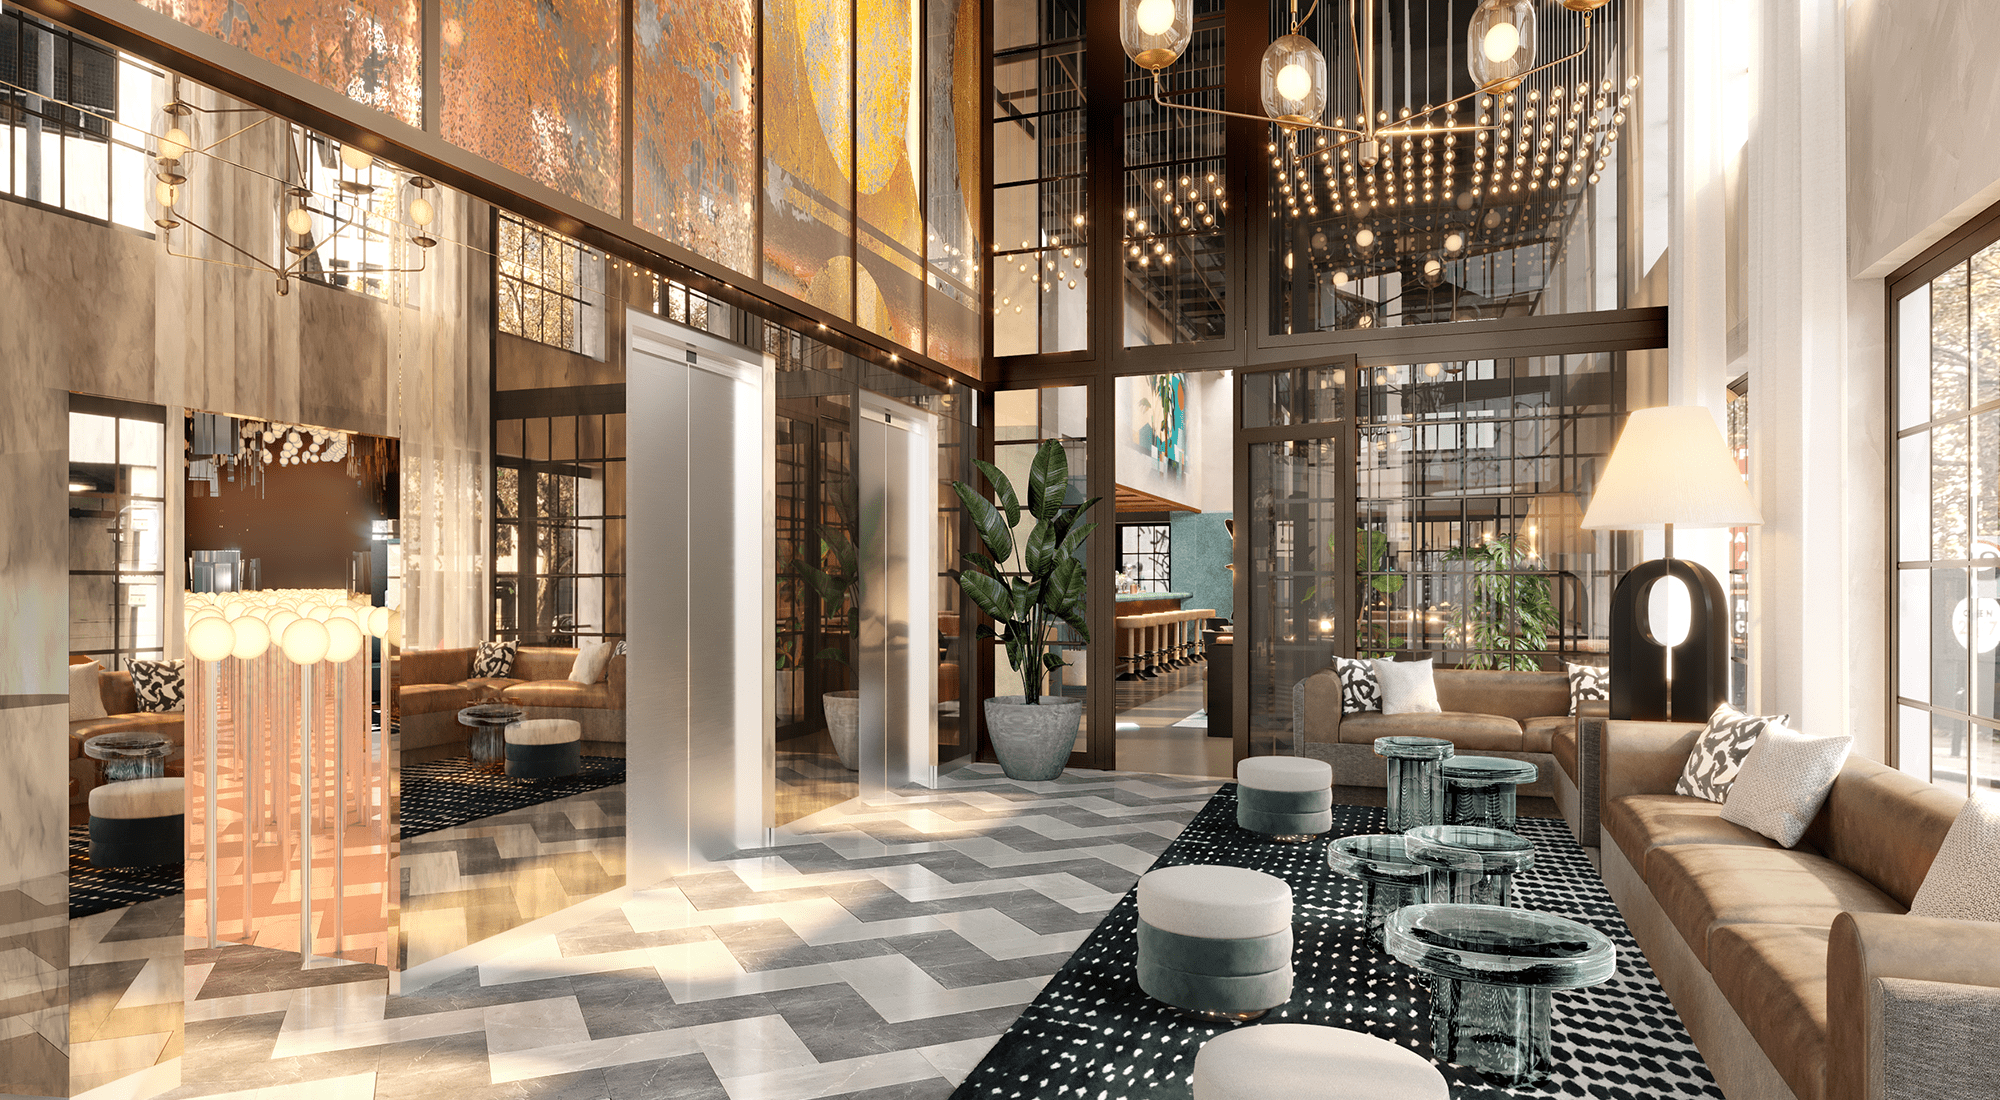 Mondrian Shoreditch London reopens after a complete redesign by Goddard Littlefair